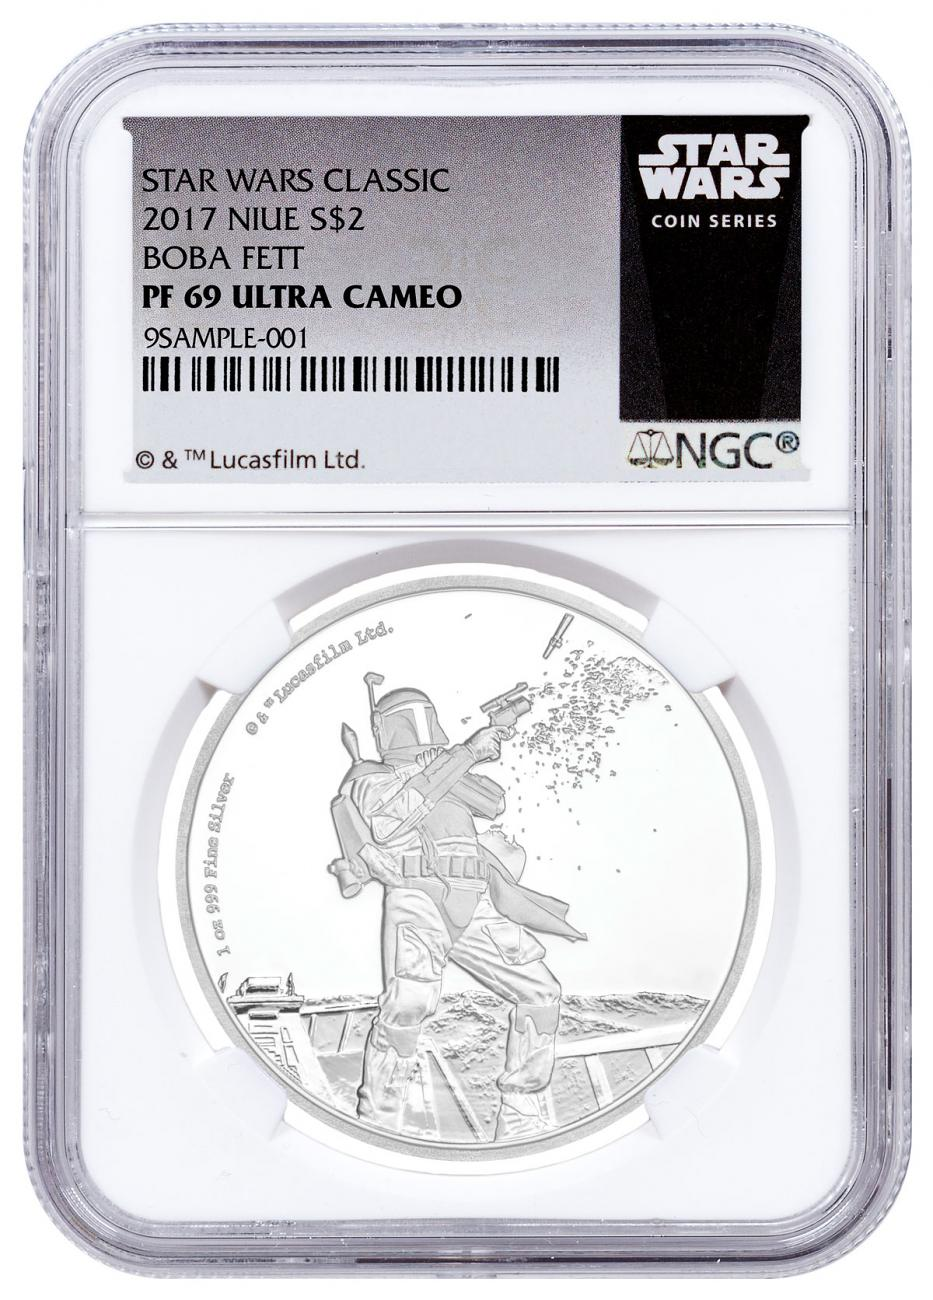 2017 Niue Star Wars Classic - Boba Fett 1 oz Silver Proof $2 Coin NGC PF69 UC Exclusive Star Wars Label